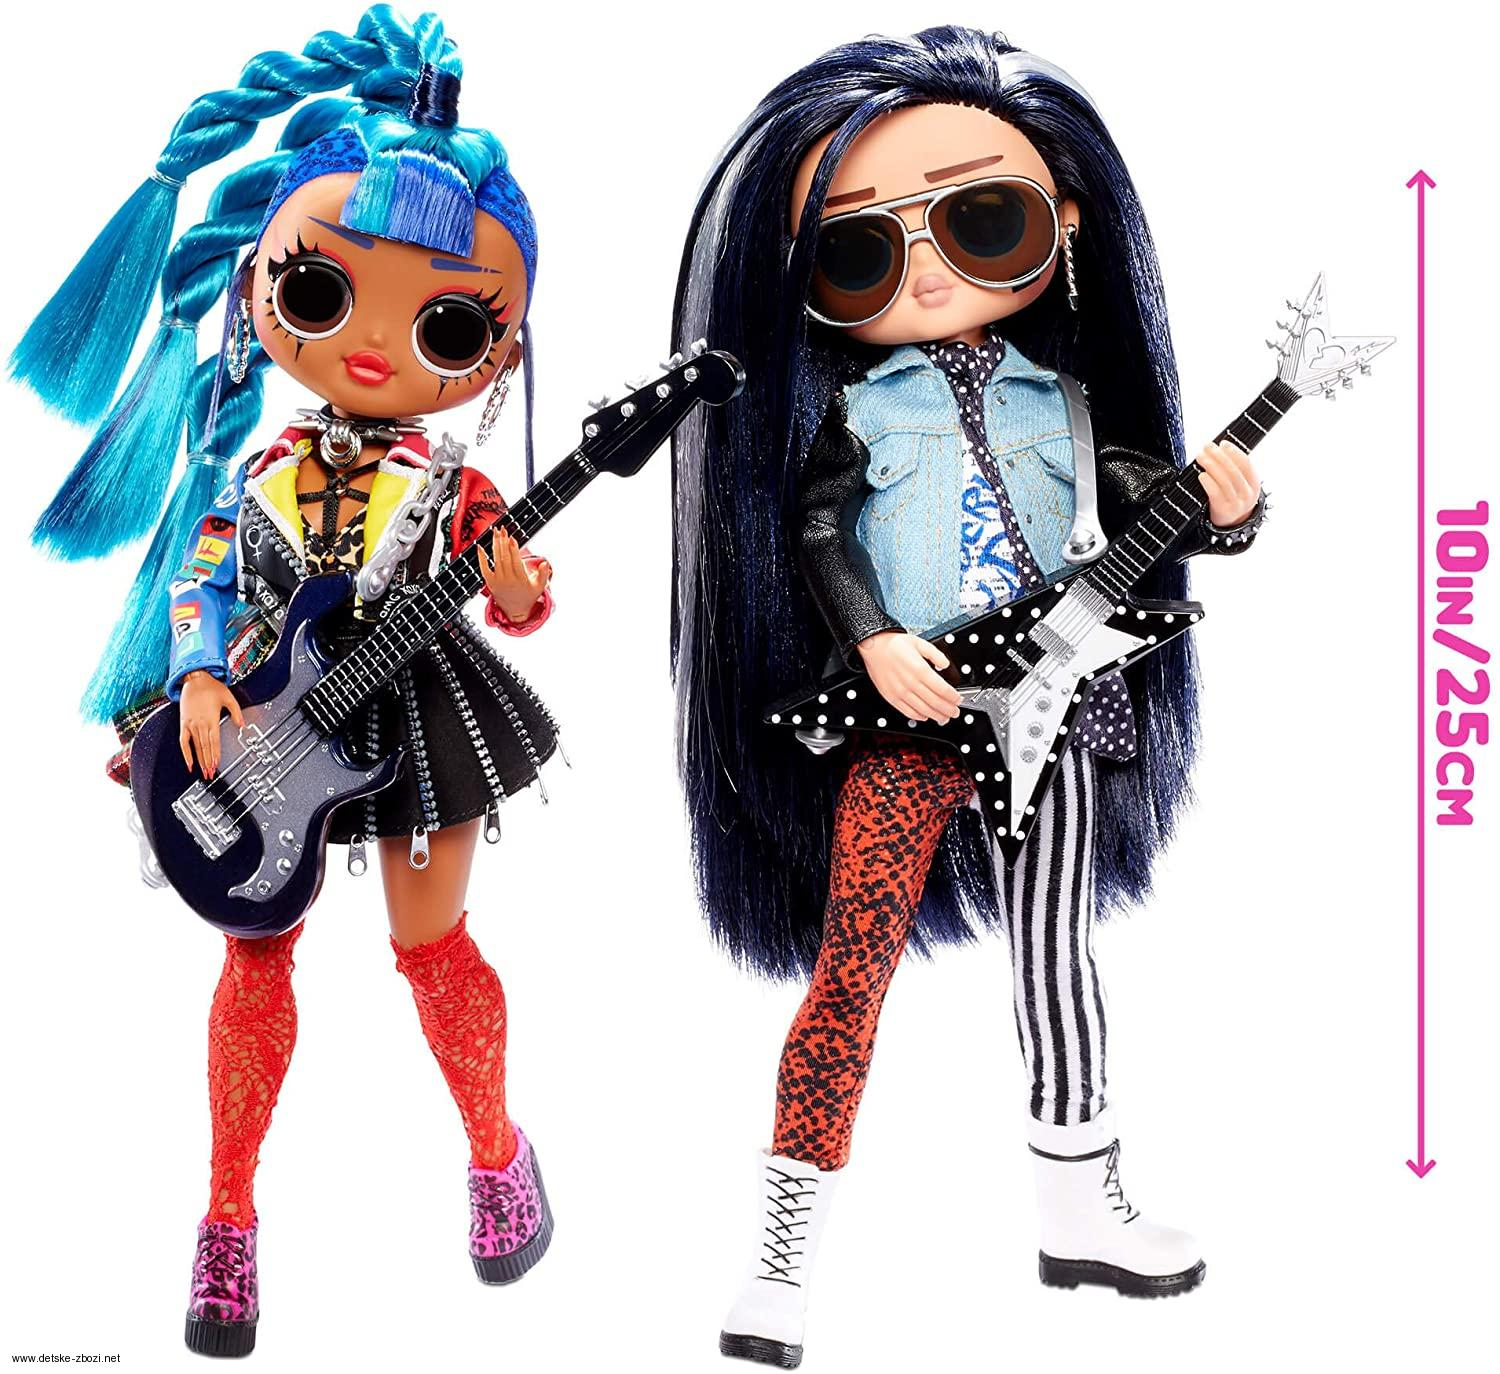 LOL Surprise OMG Remix Rocker Boi & Punk Grrrl Rocková sestava